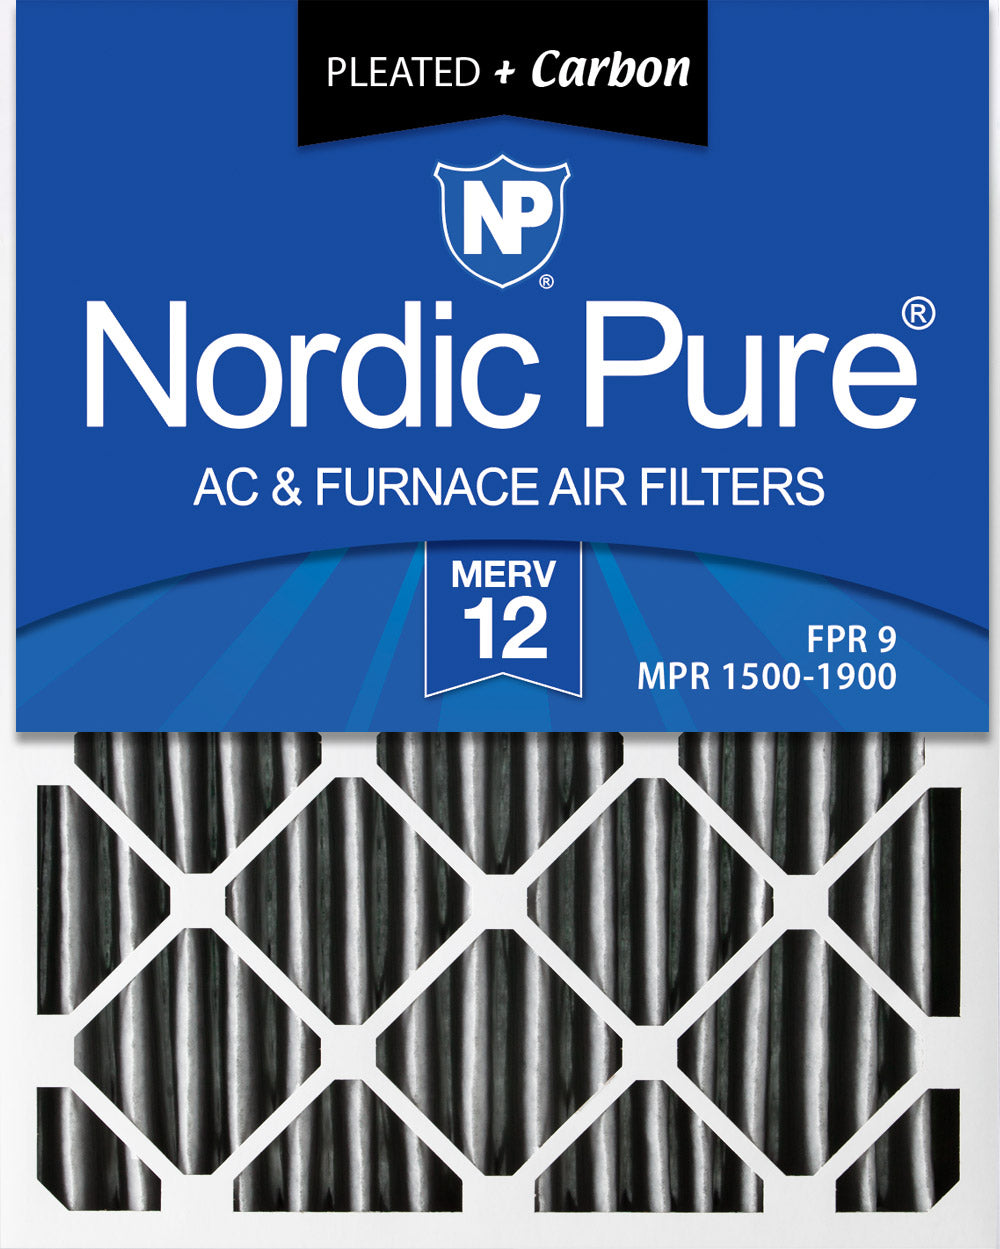 16x20x4 (3 5/8) Furnace Air Filters MERV 12 Pleated Plus Carbon 1 Pack